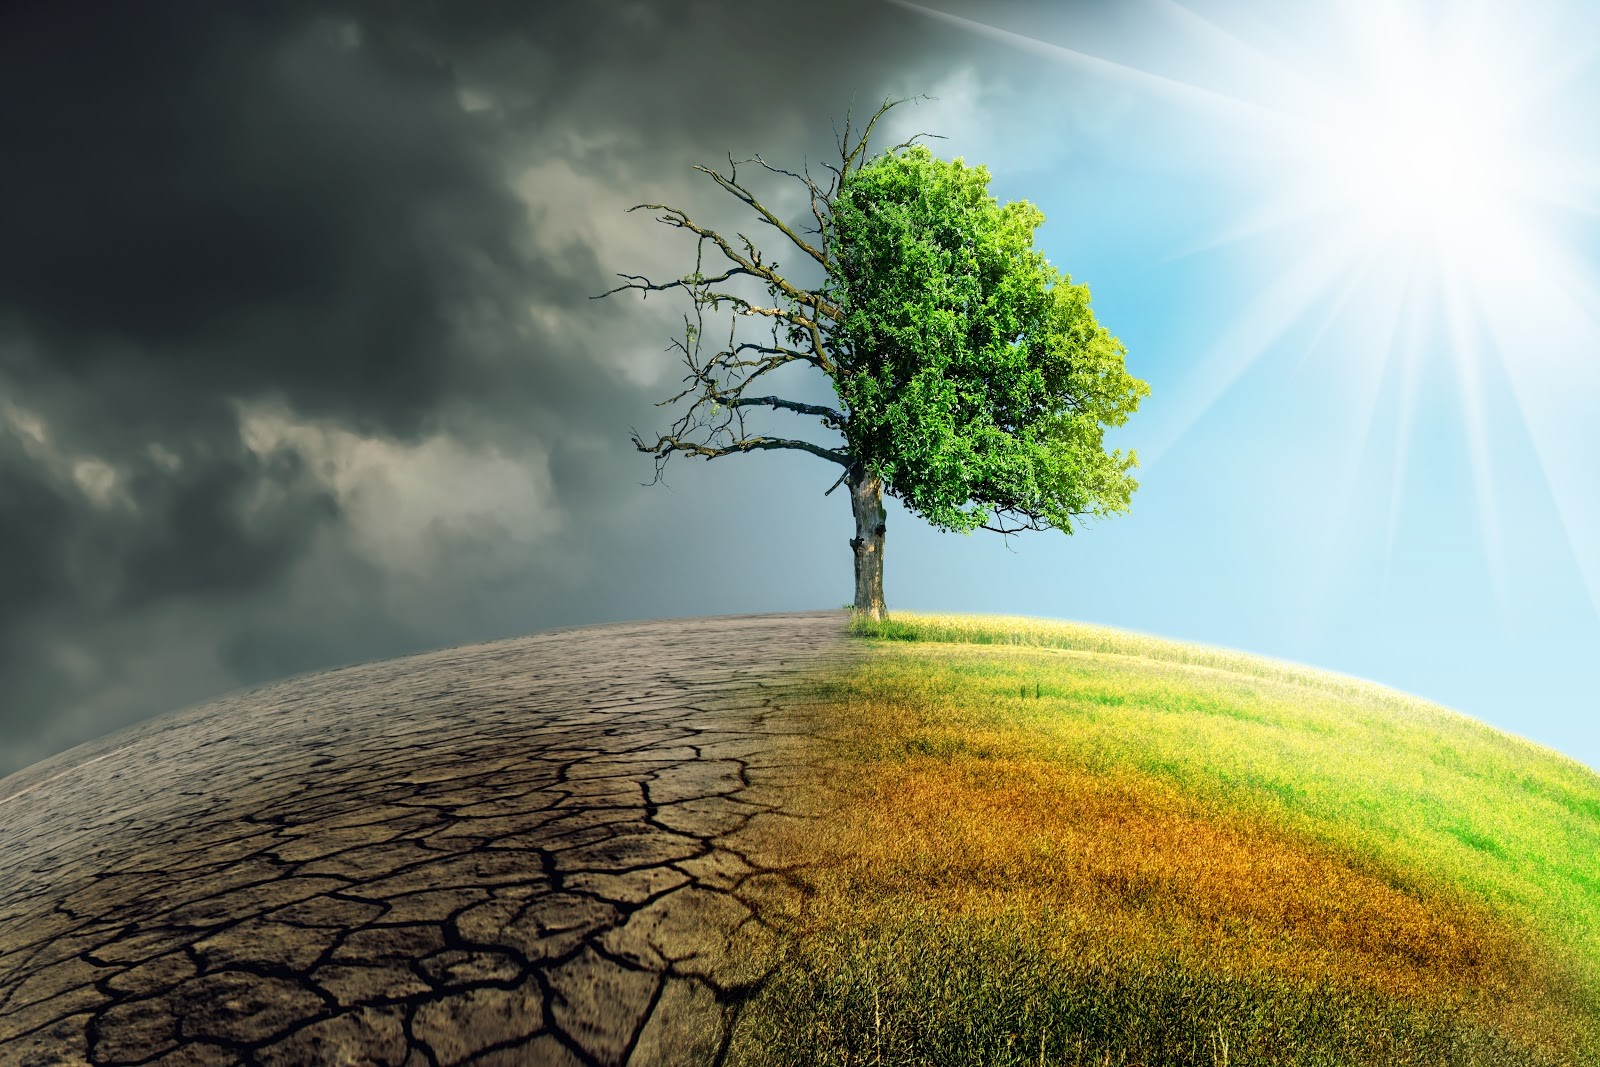 CLIMATE CHANGE CONTRIBUTING TO NEED FOR BETTER ROOF MATERIALS